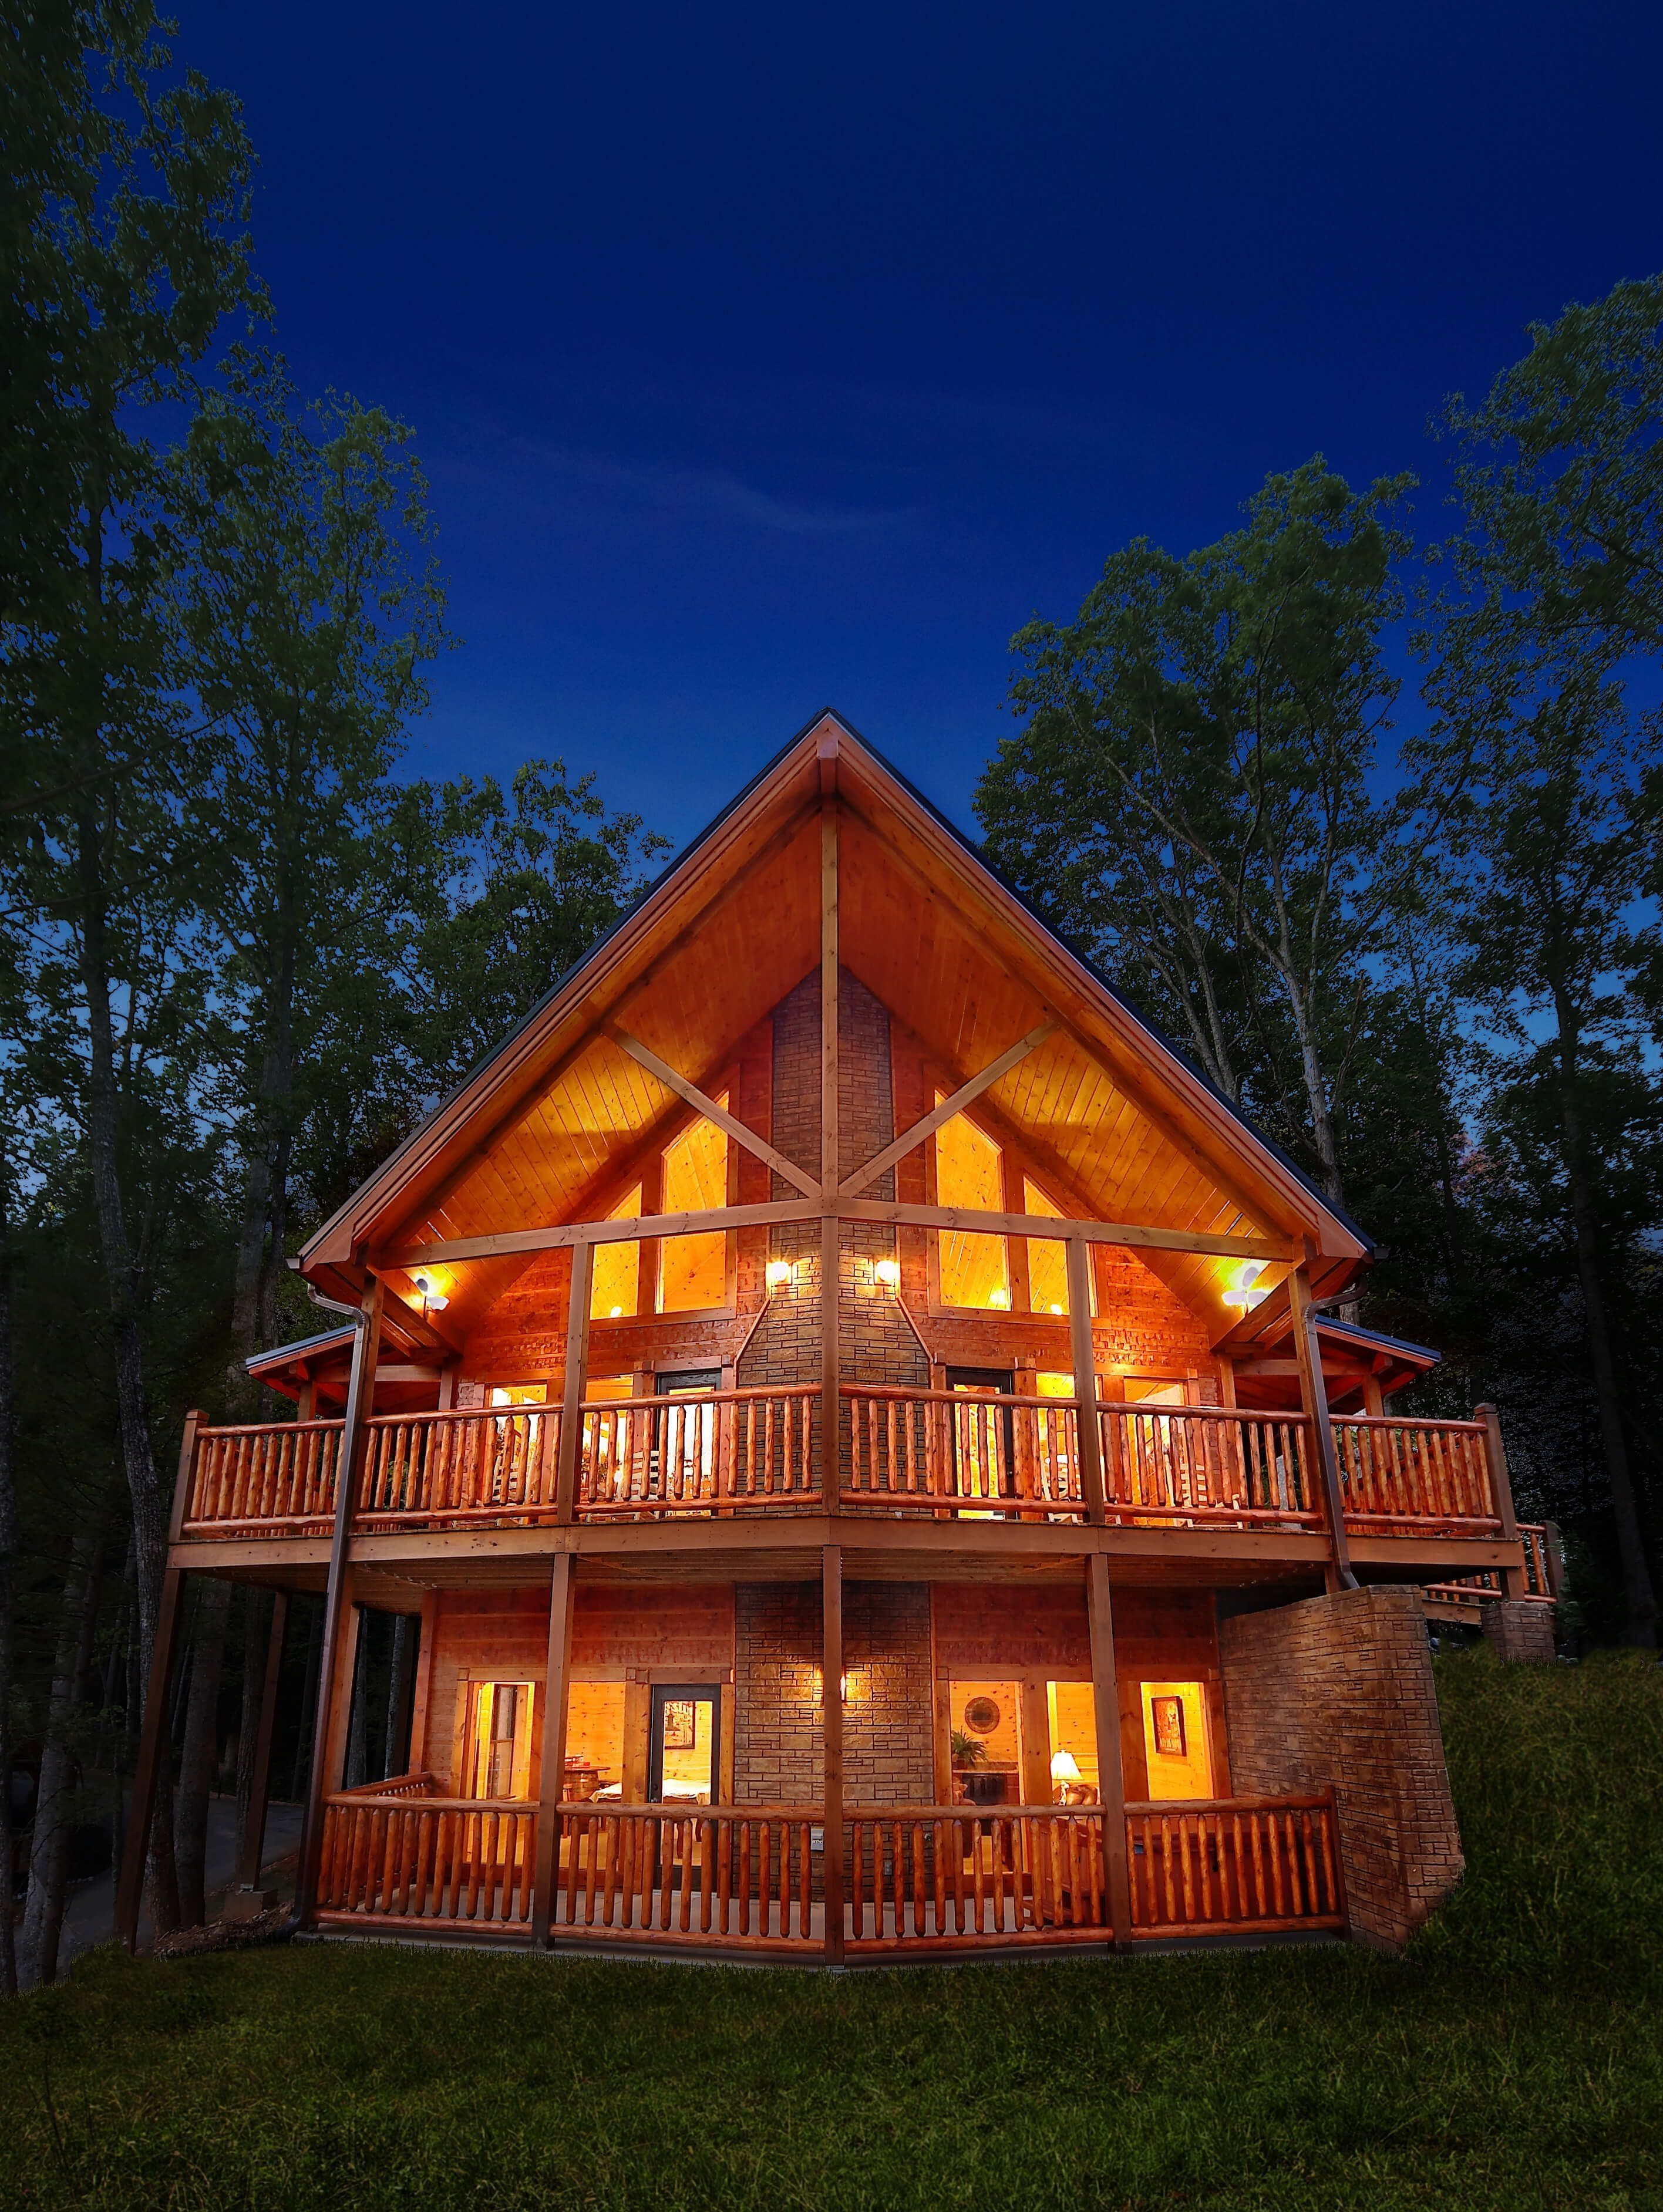 30 Affordable Small Log Cabin Ideas With Awesome Decoration In 2020 Dream House Exterior Gatlinburg Cabin Rentals Small Log Cabin